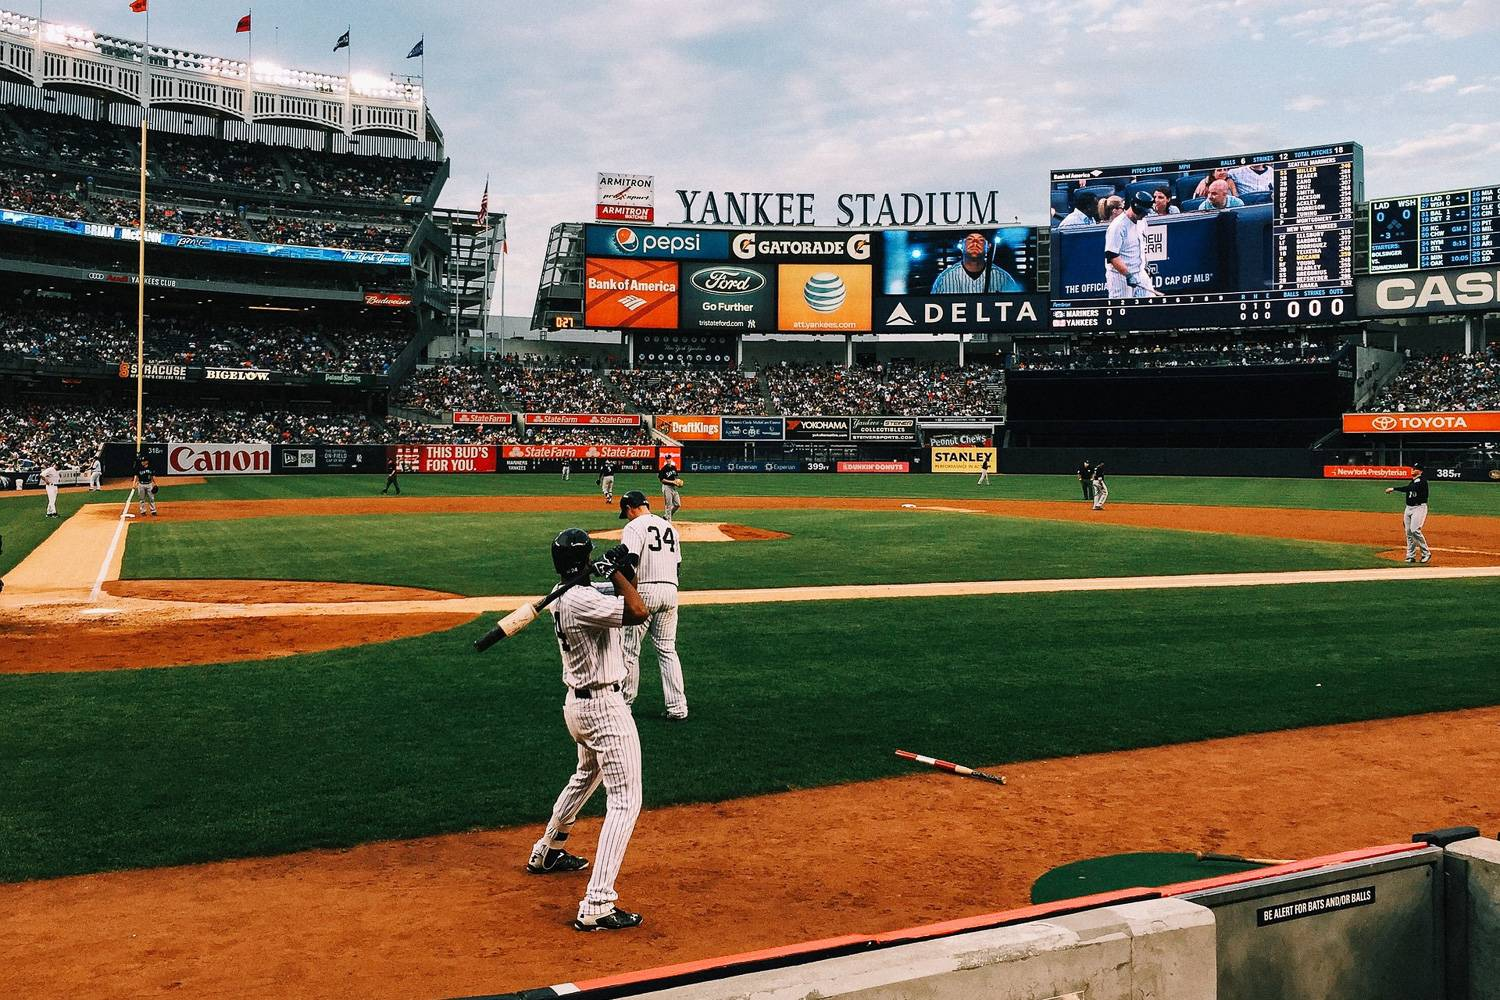 Image of the baseball game in Yankee stadium from the point of view of the batter.